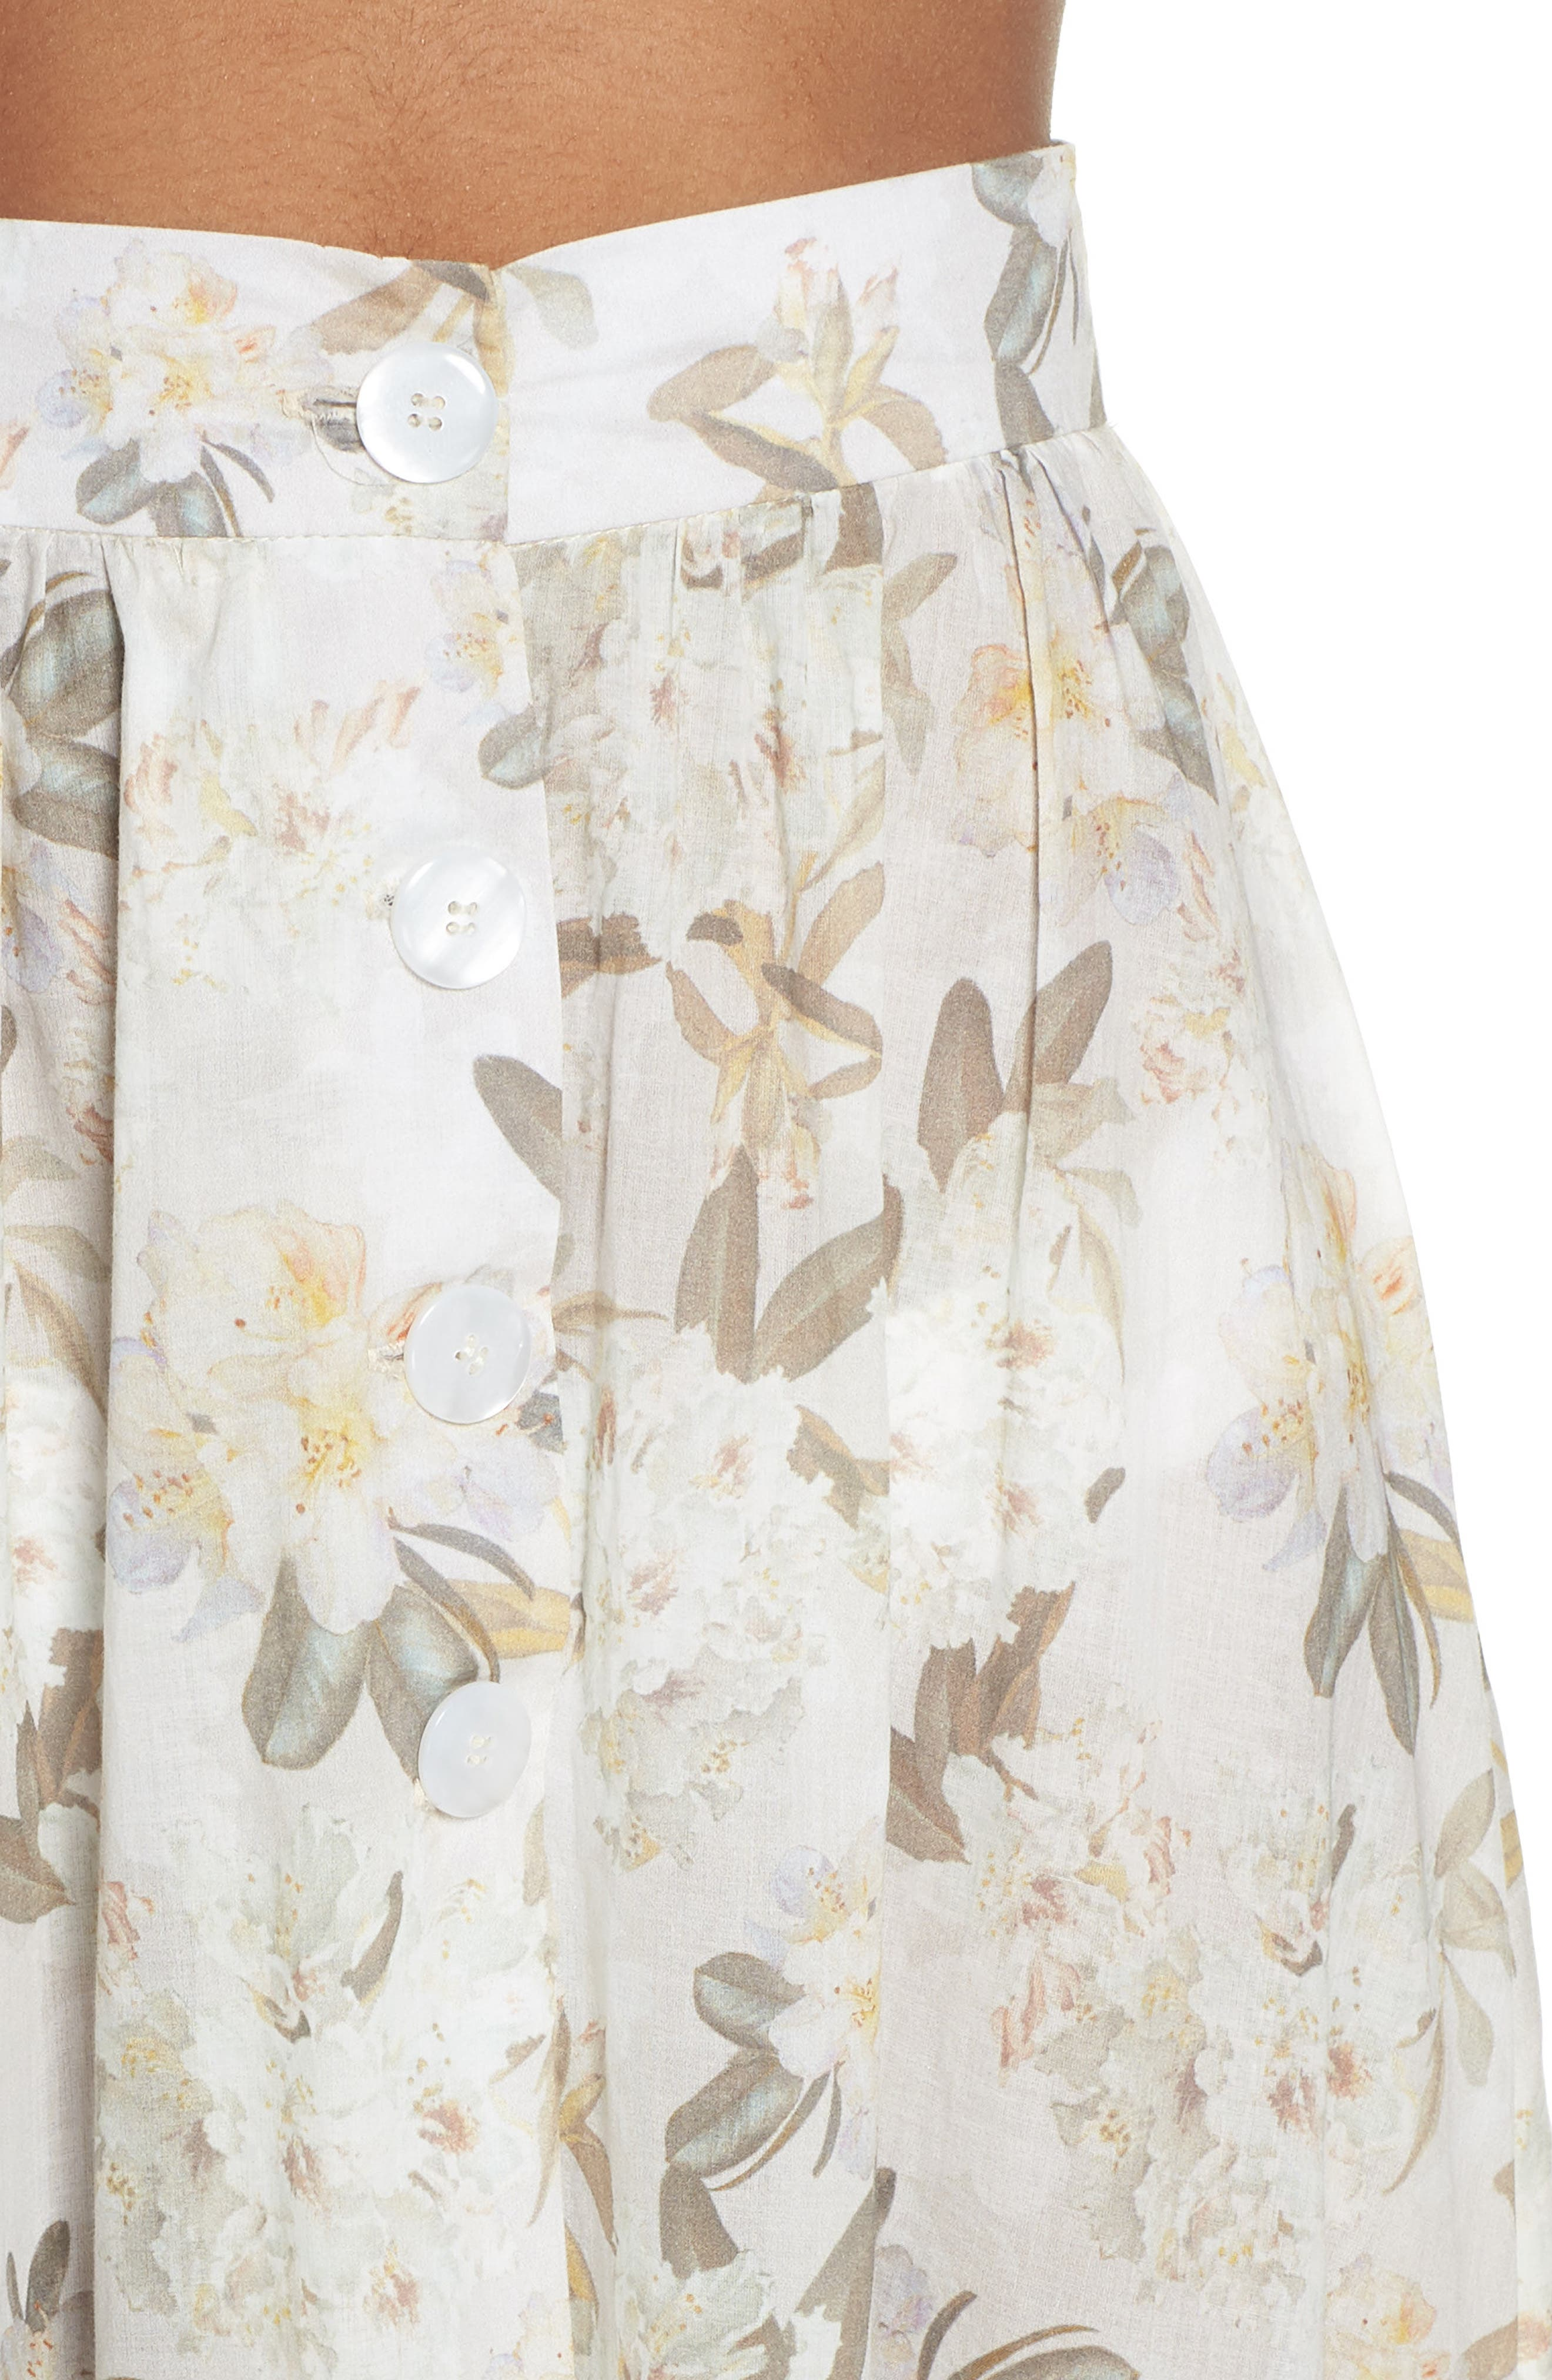 Edith Cover-Up Maxi Skirt,                             Alternate thumbnail 4, color,                             Ete Floral White